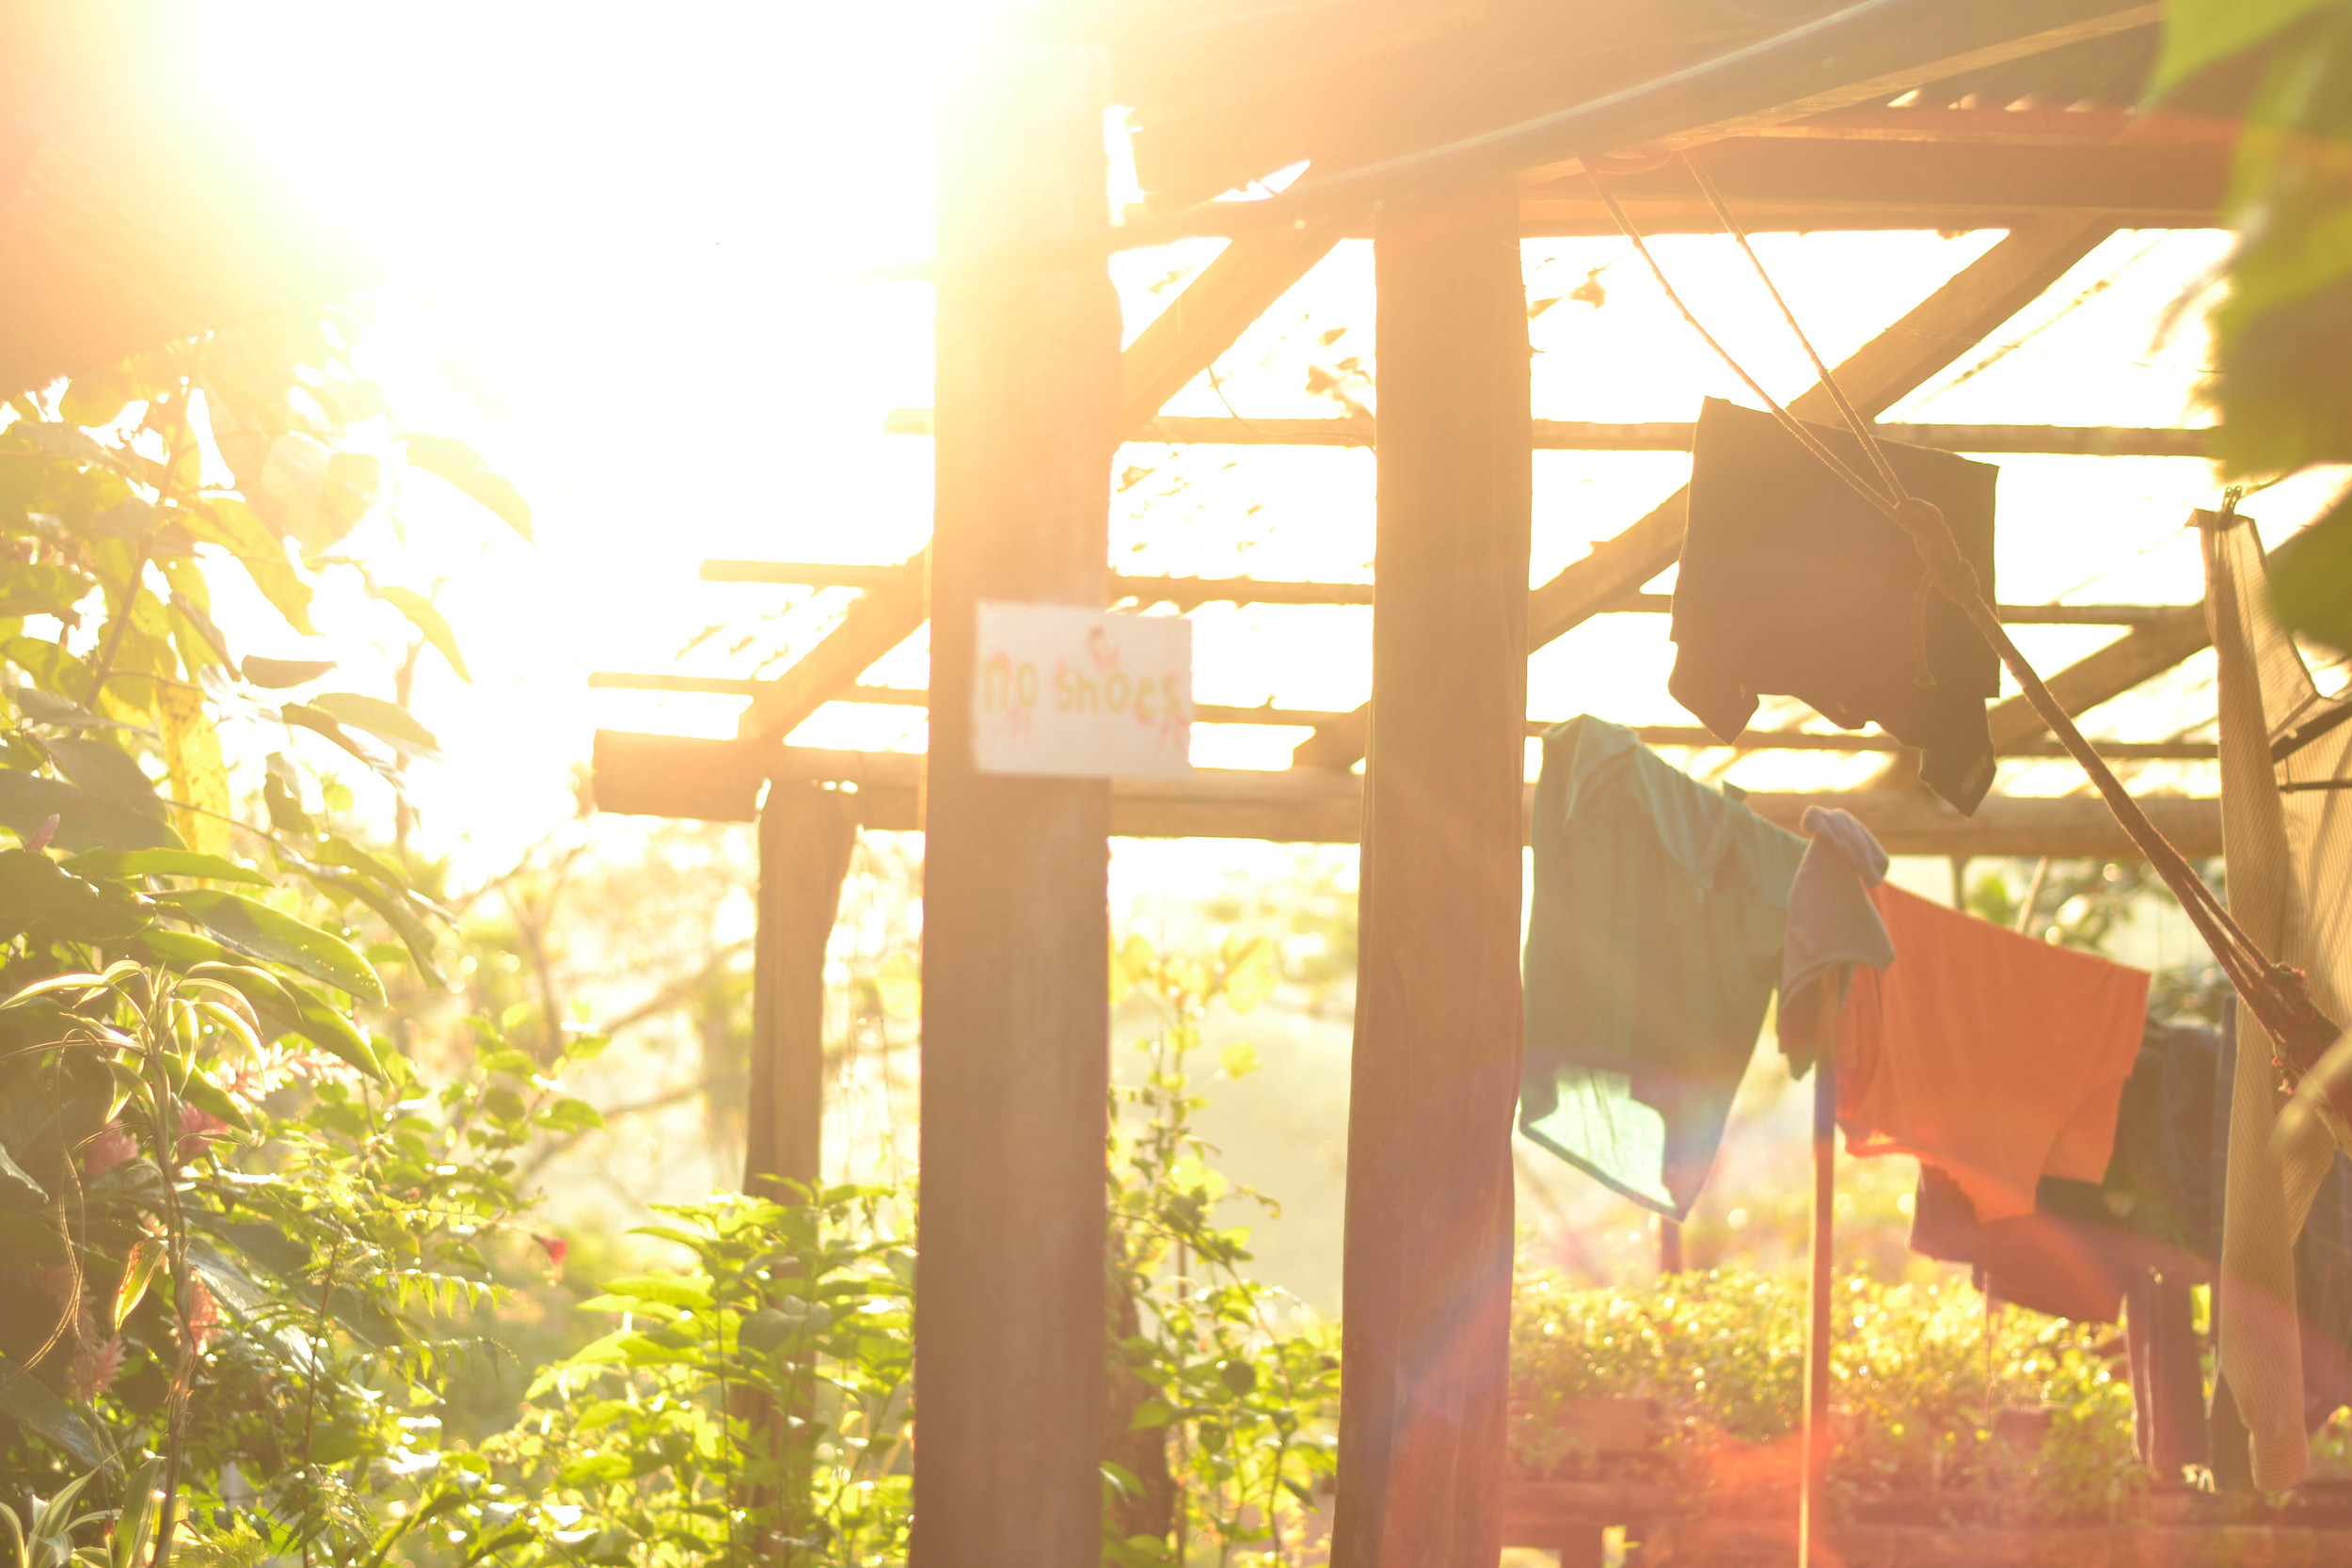 Laundry hanging out to dry in the morning sun